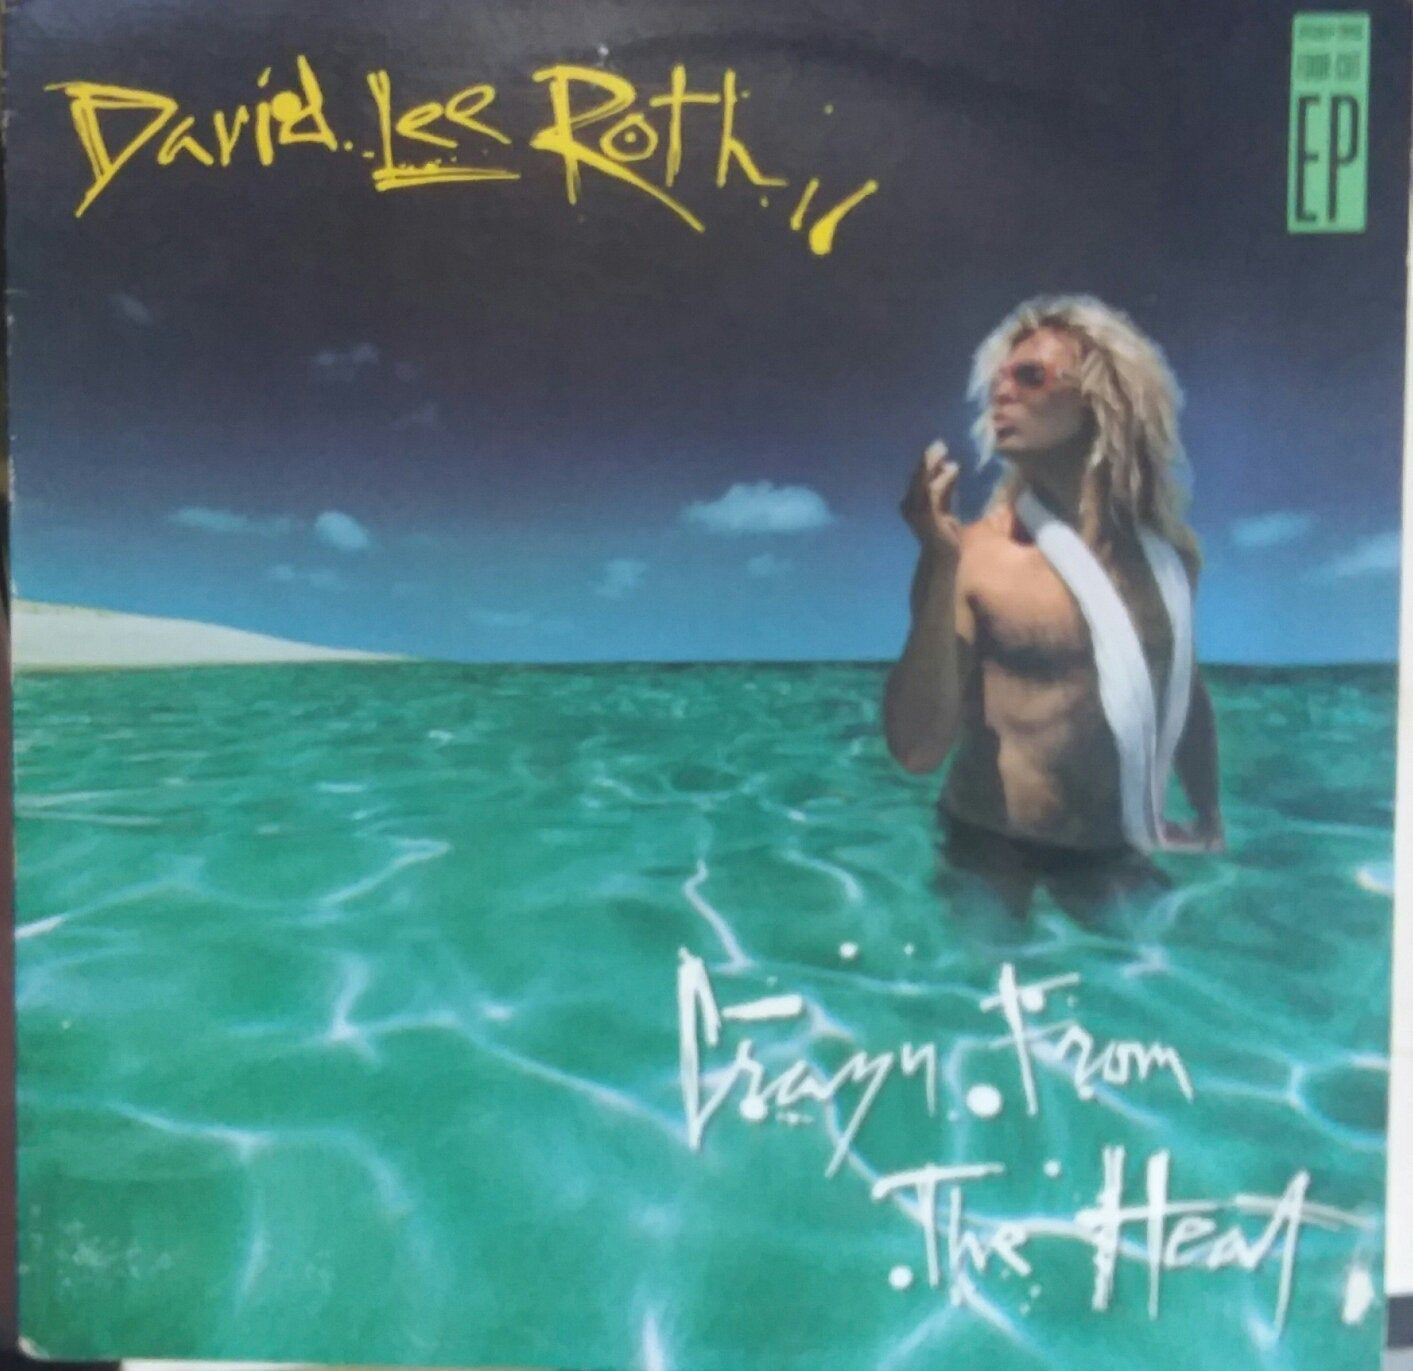 David Lee Roth Crazy From The Heart Ep Vintage Record Album Vinyl Ep Classic Cover Songs Van Halen Former Singer Showman David Lee Roth David Lee Van Halen